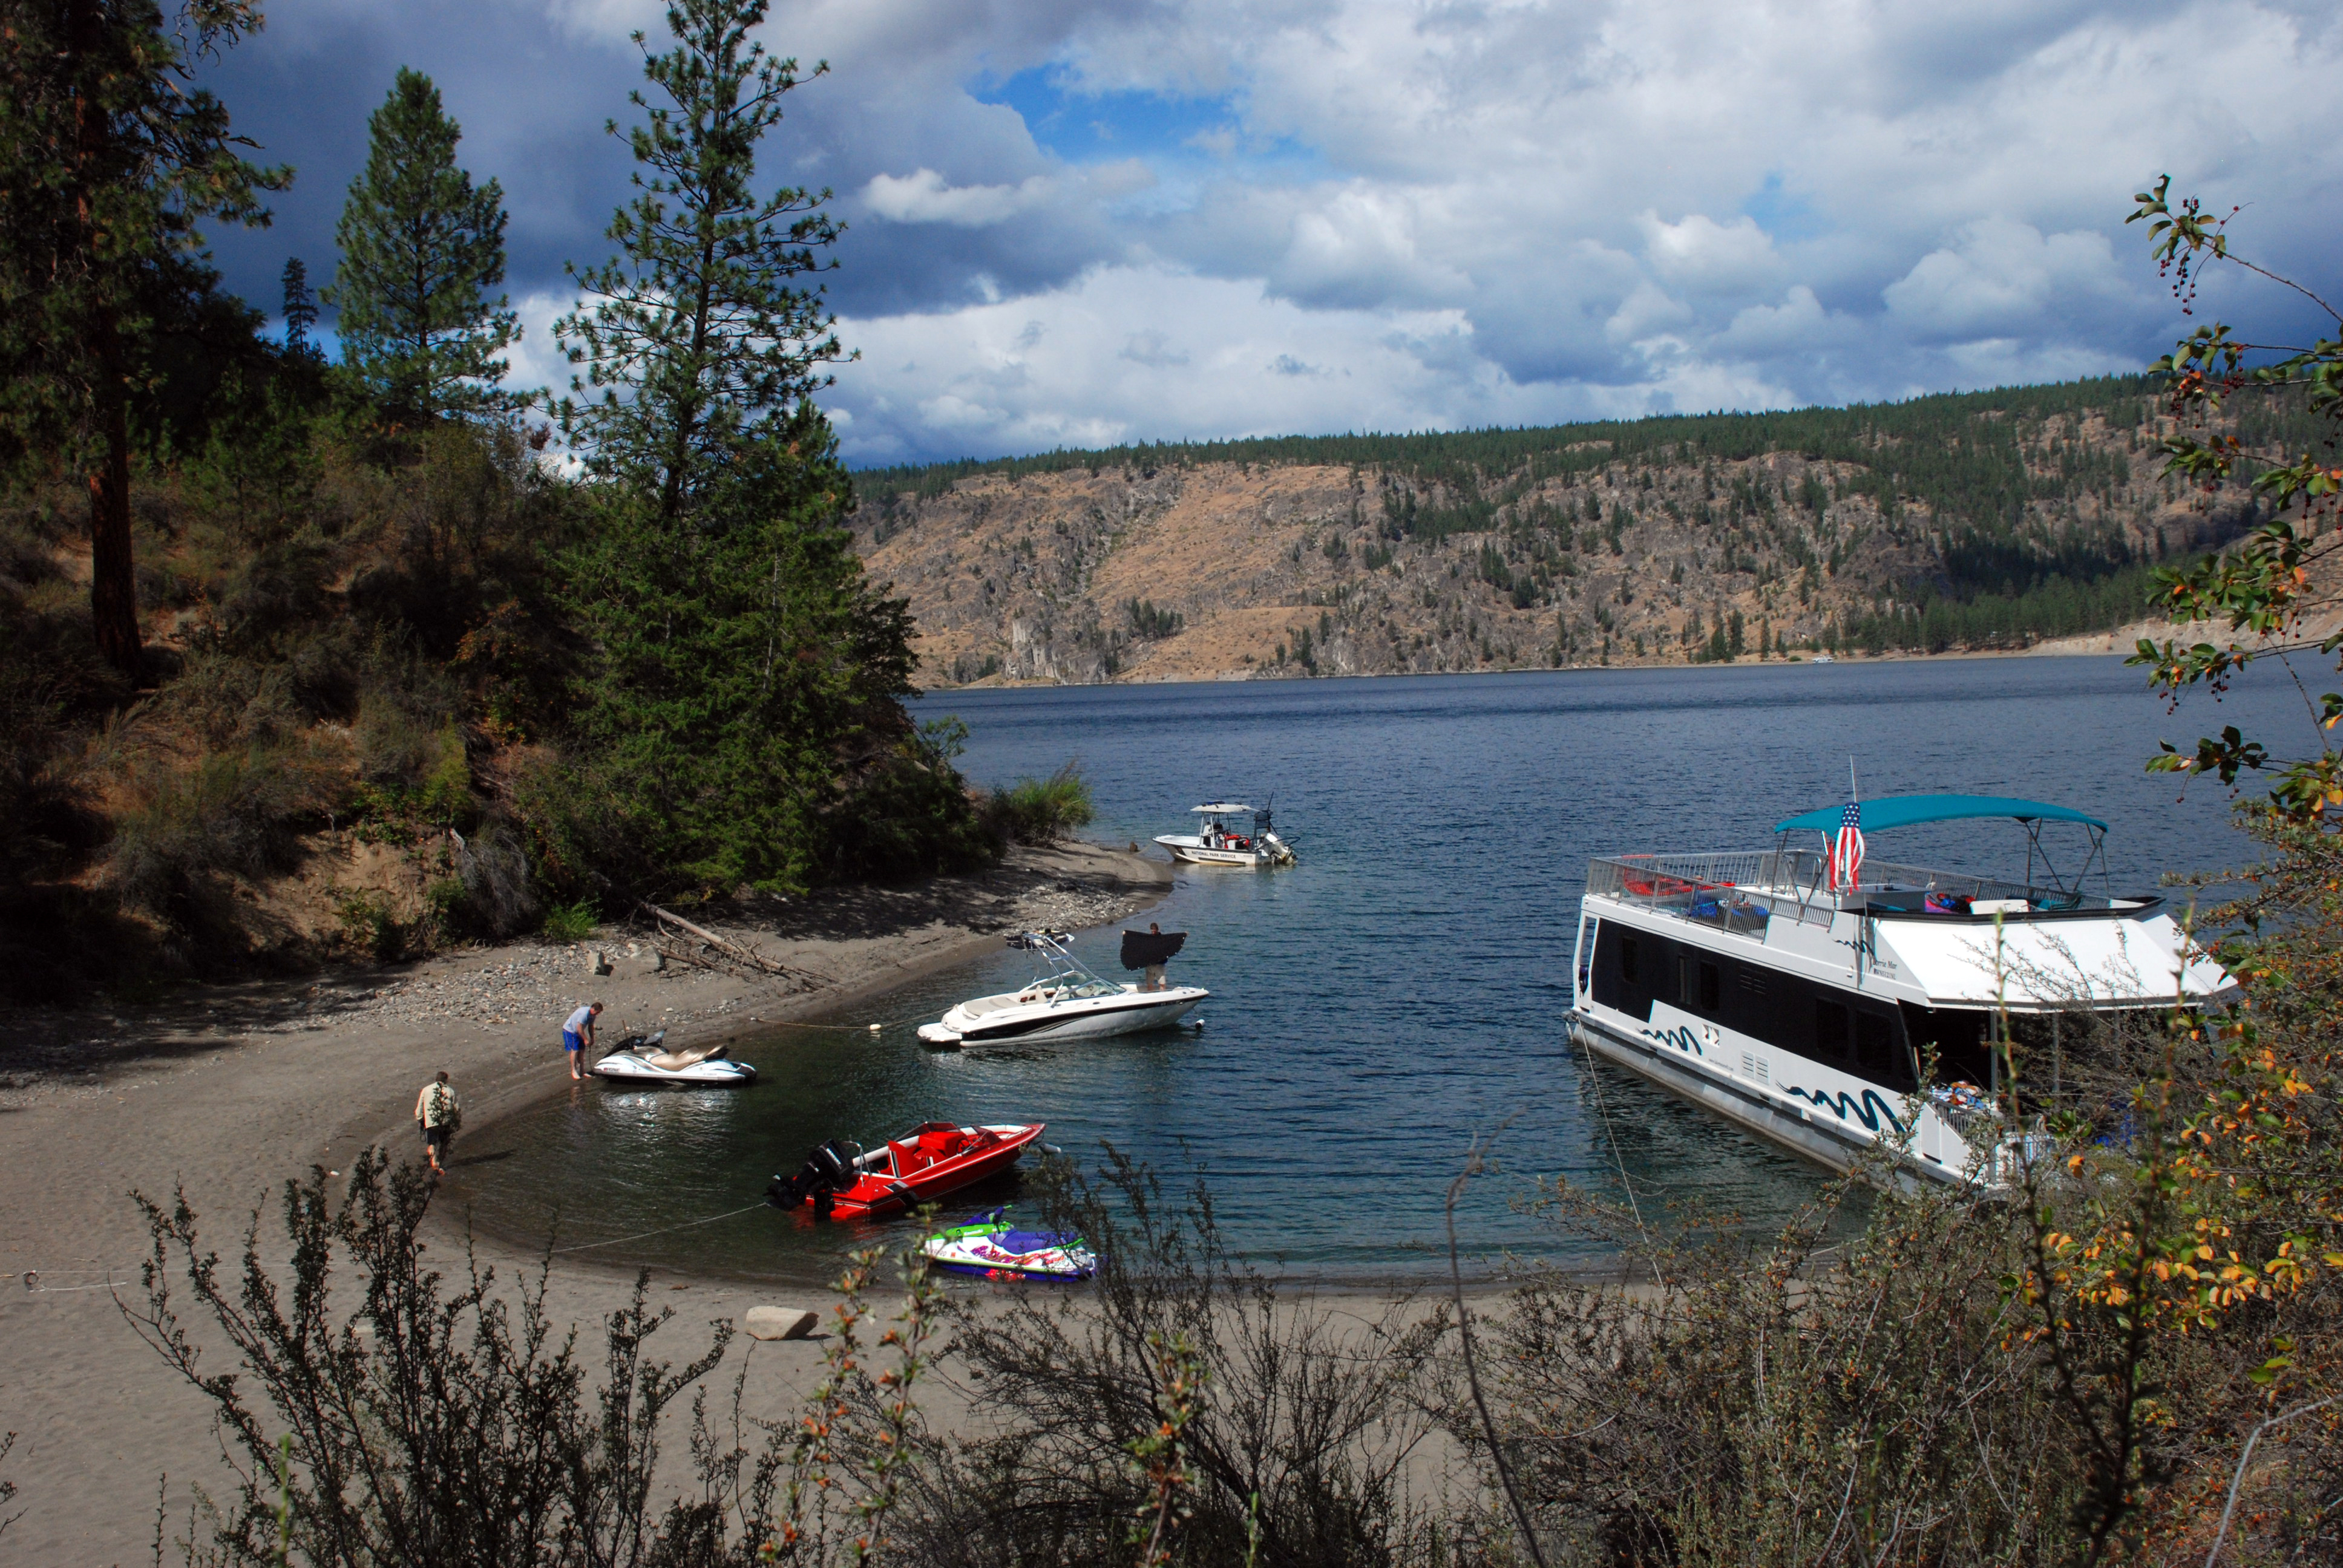 Lake Roosevelt Boat Launches Gated During Government Shutdown The